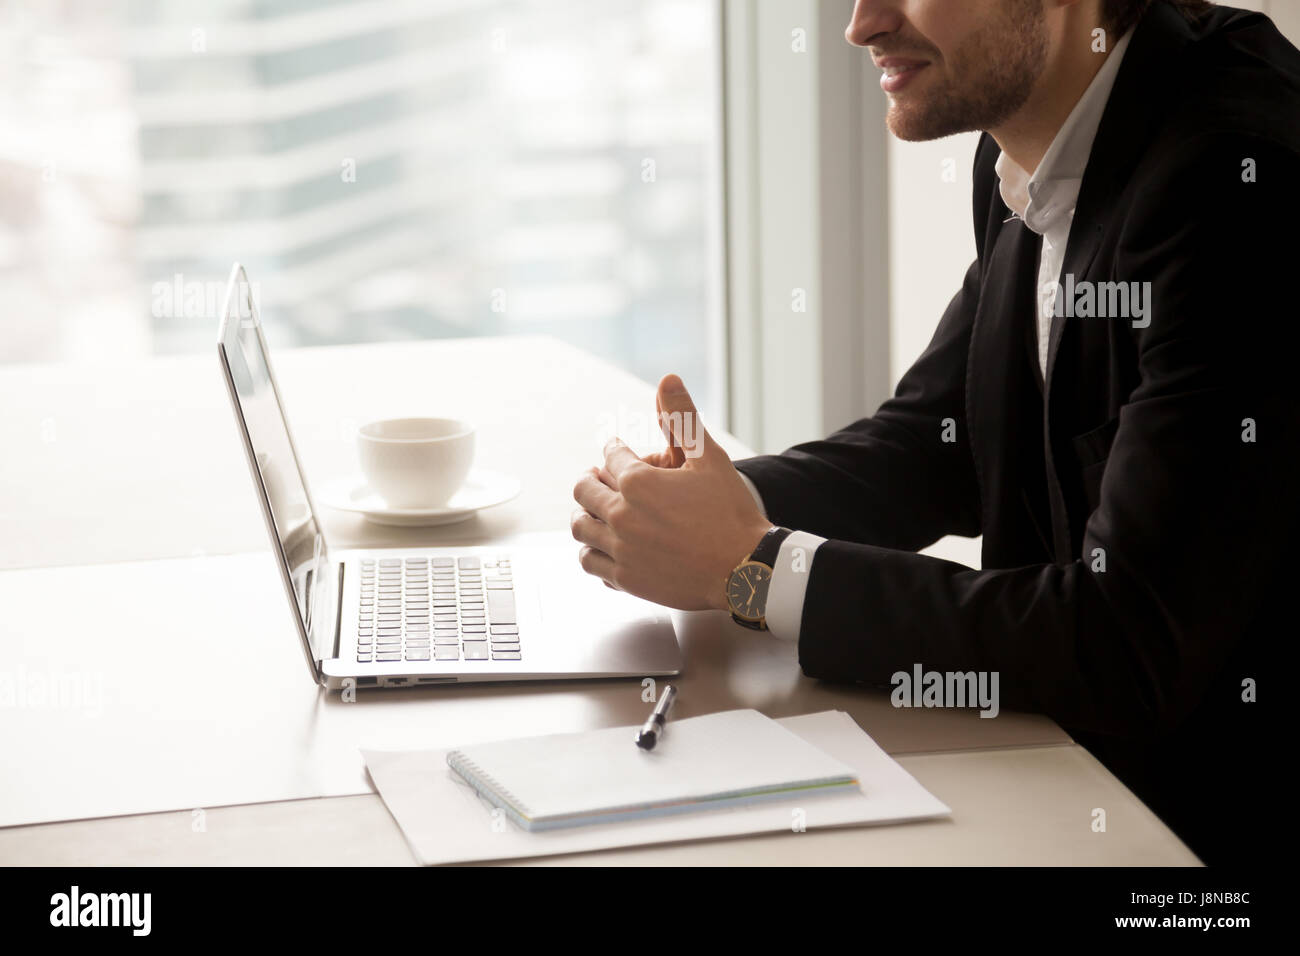 Close up photo of successful businessman sitting at desk with laptop and conducts negotiations. Male entrepreneur Stock Photo